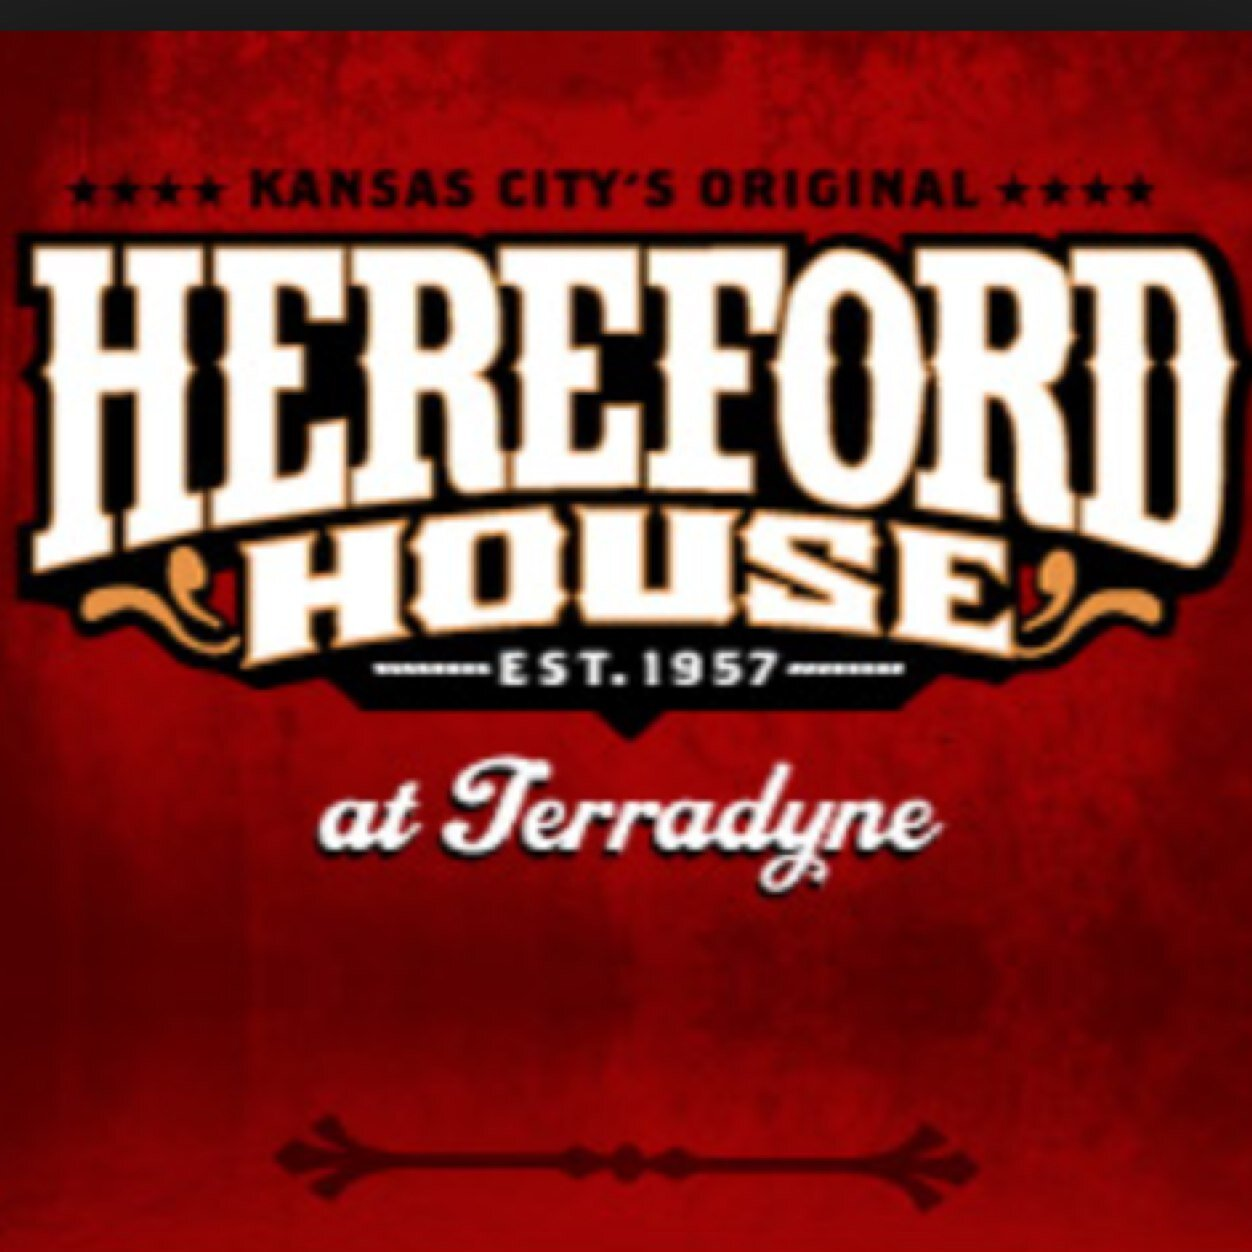 The Hereford House